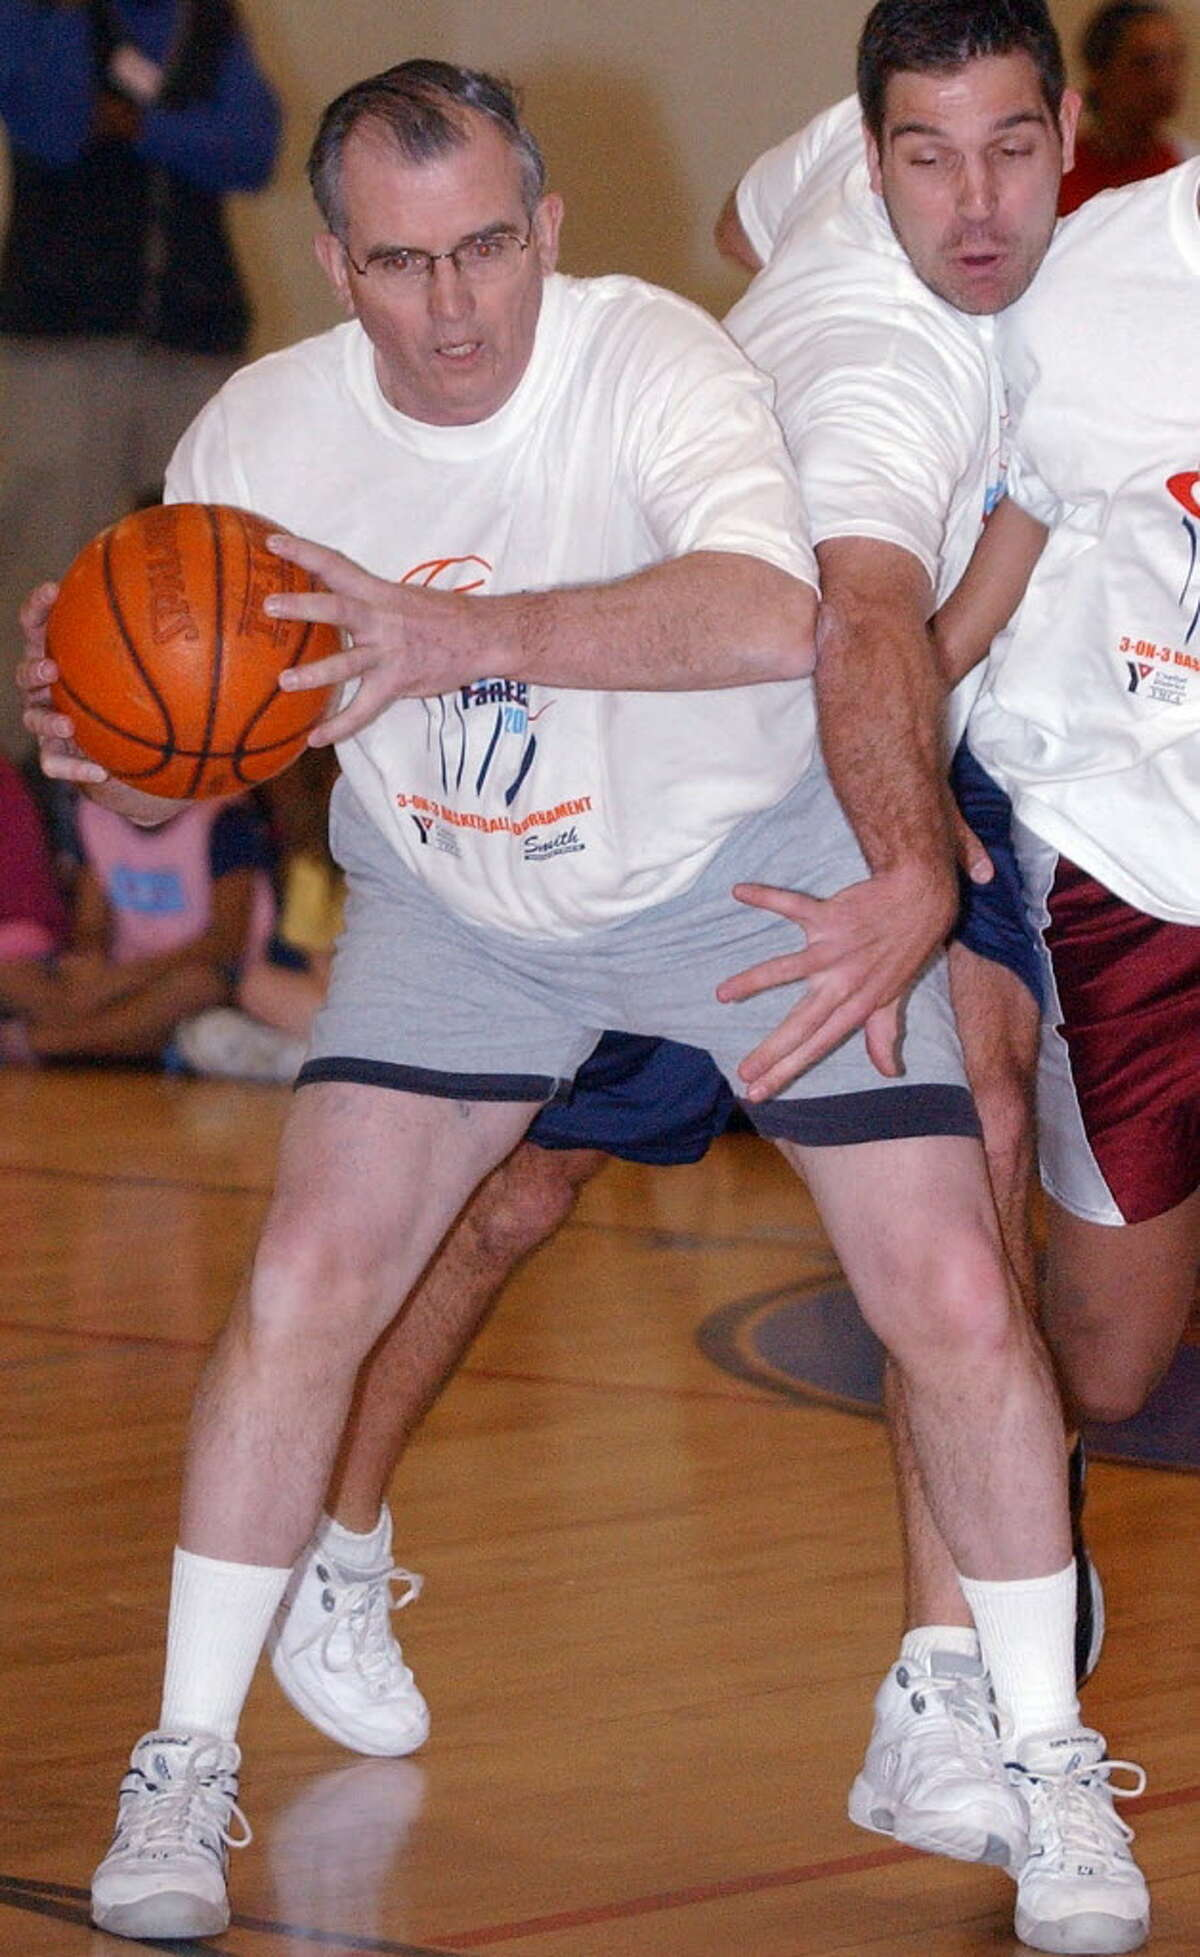 Albany County Executive Mike Breslin handles the ball as Greg Koubek defends during the 3-on-3 basketball game opening a 3-on-3 basketball tournament in conjunction with the NCAA East Regional at the Pepsi Arena on Feb. 18, 2003.